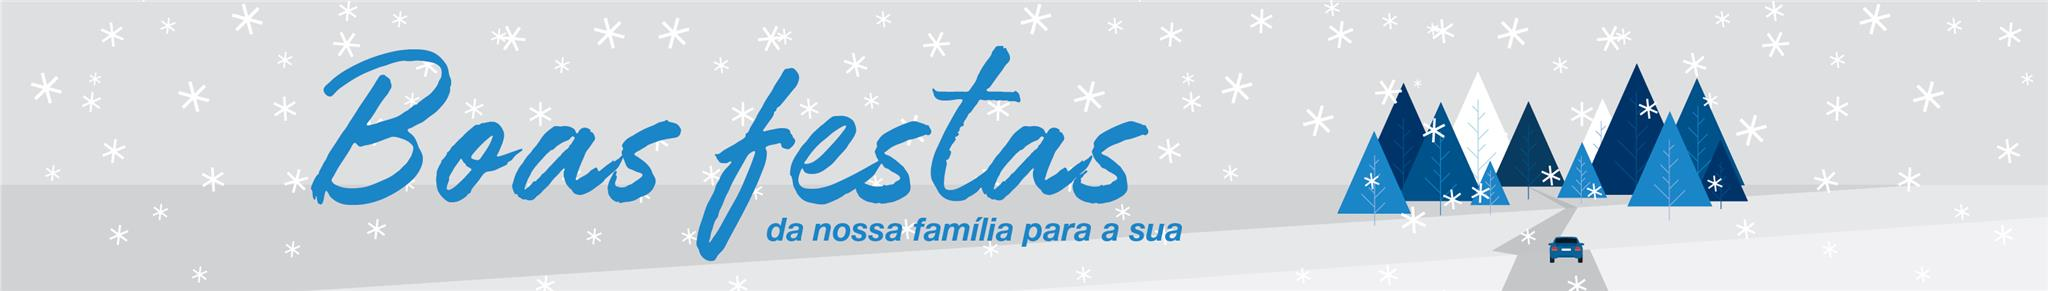 Boas festas cox automotive